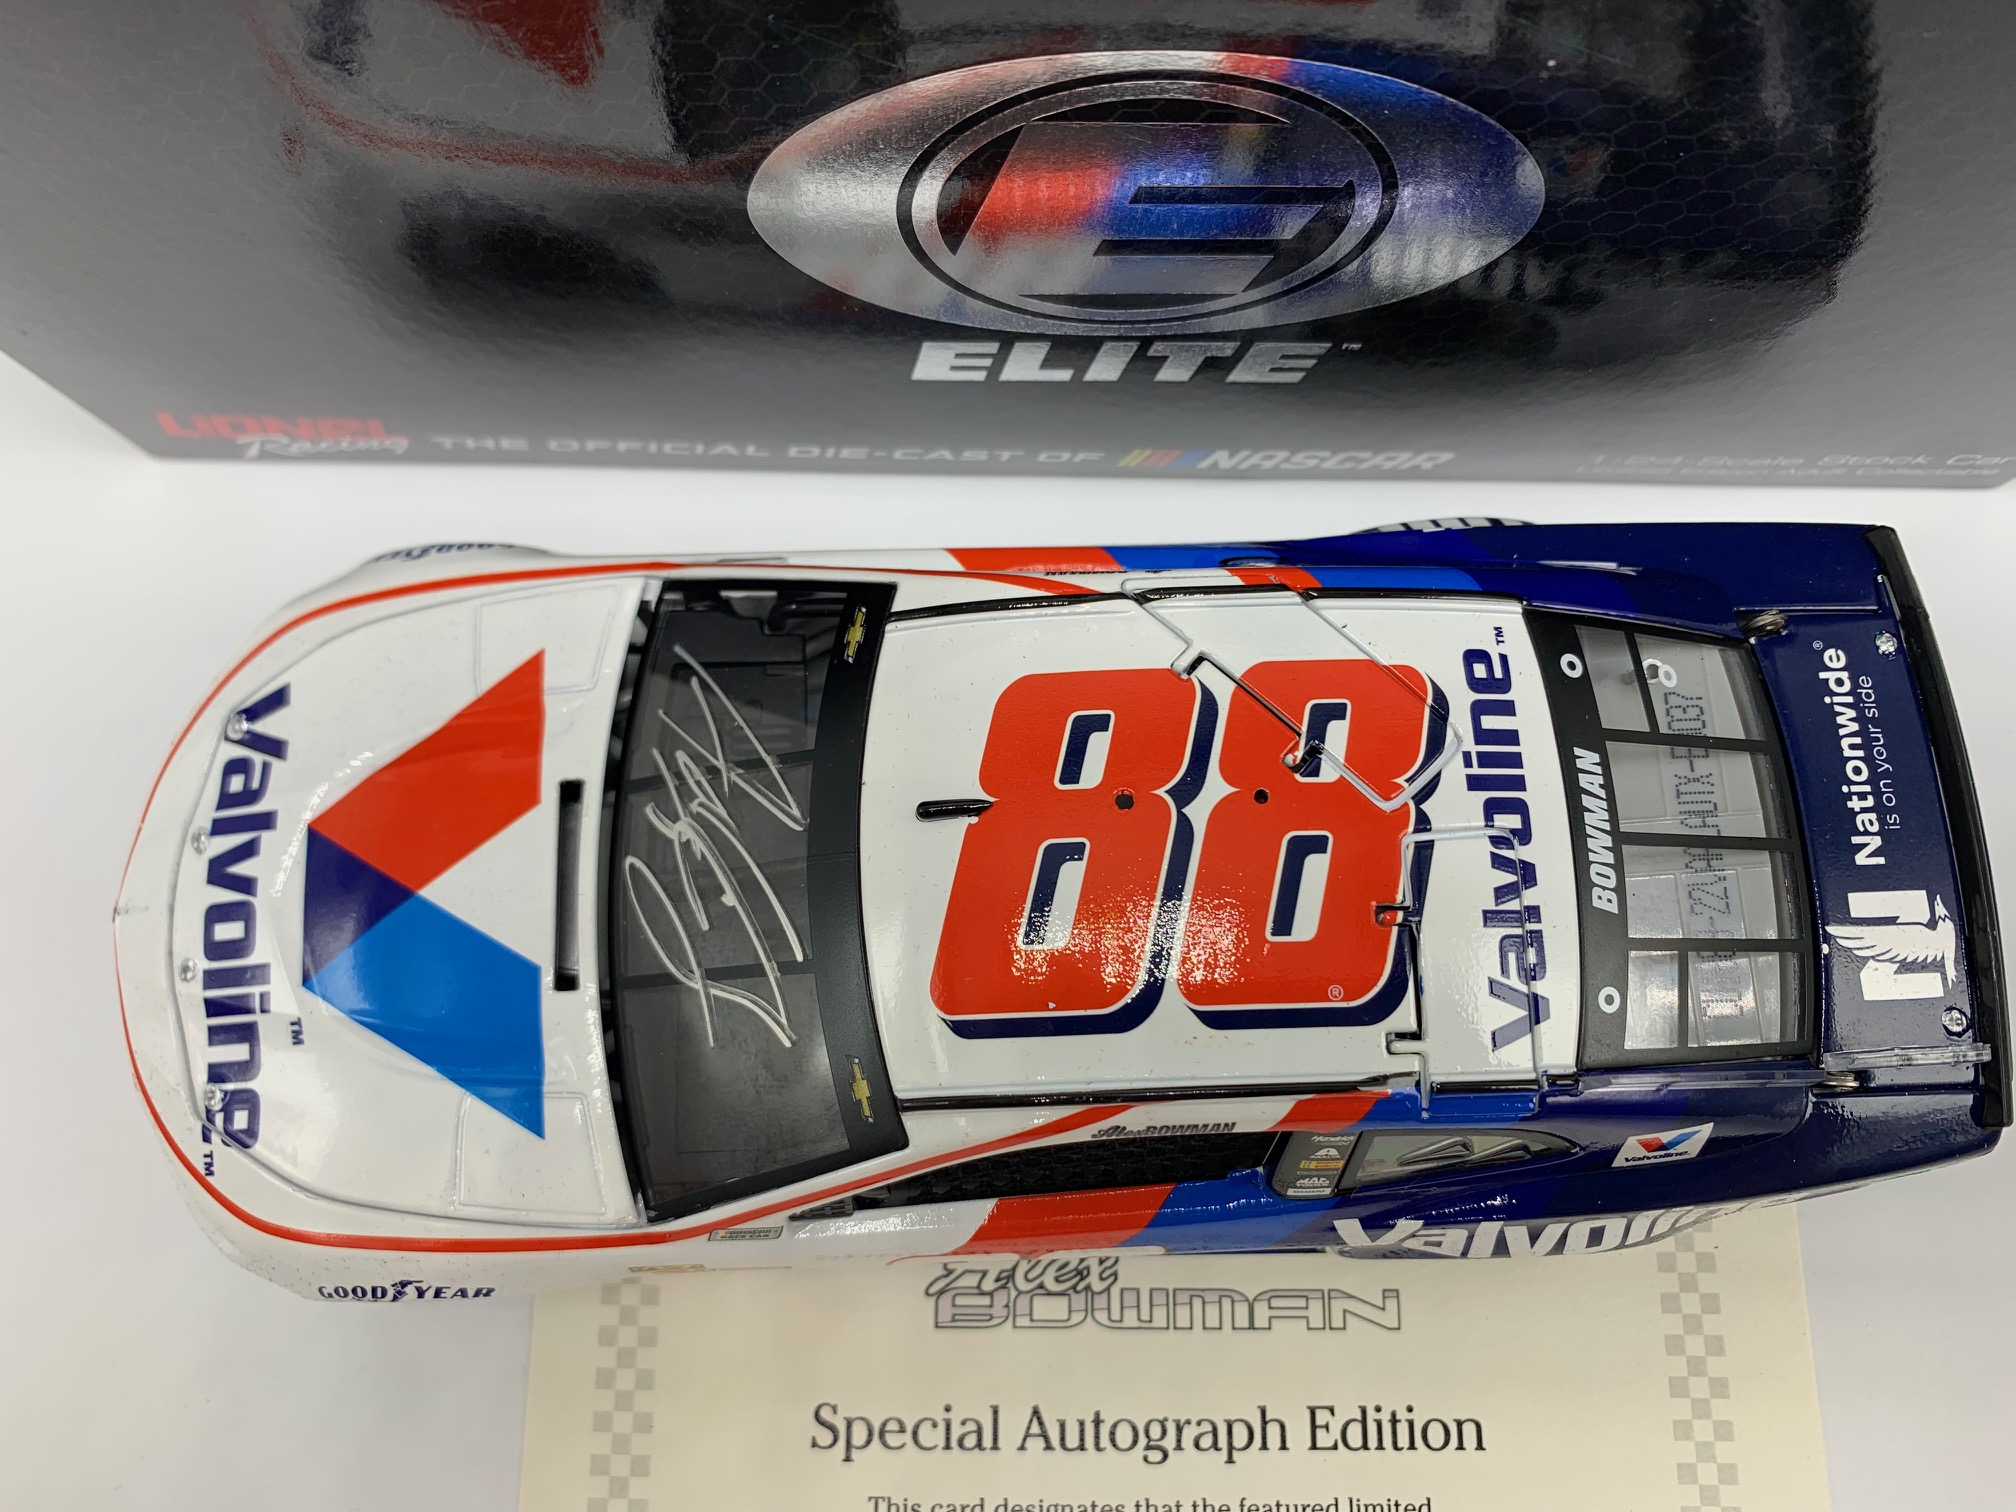 ALEX BOWMAN 2018 VALVOLINE AUTOGRAPHED 1:24 ELITE DIN #37 - DAMAGED RETURN VIEW PHOTOS AND READ DESC